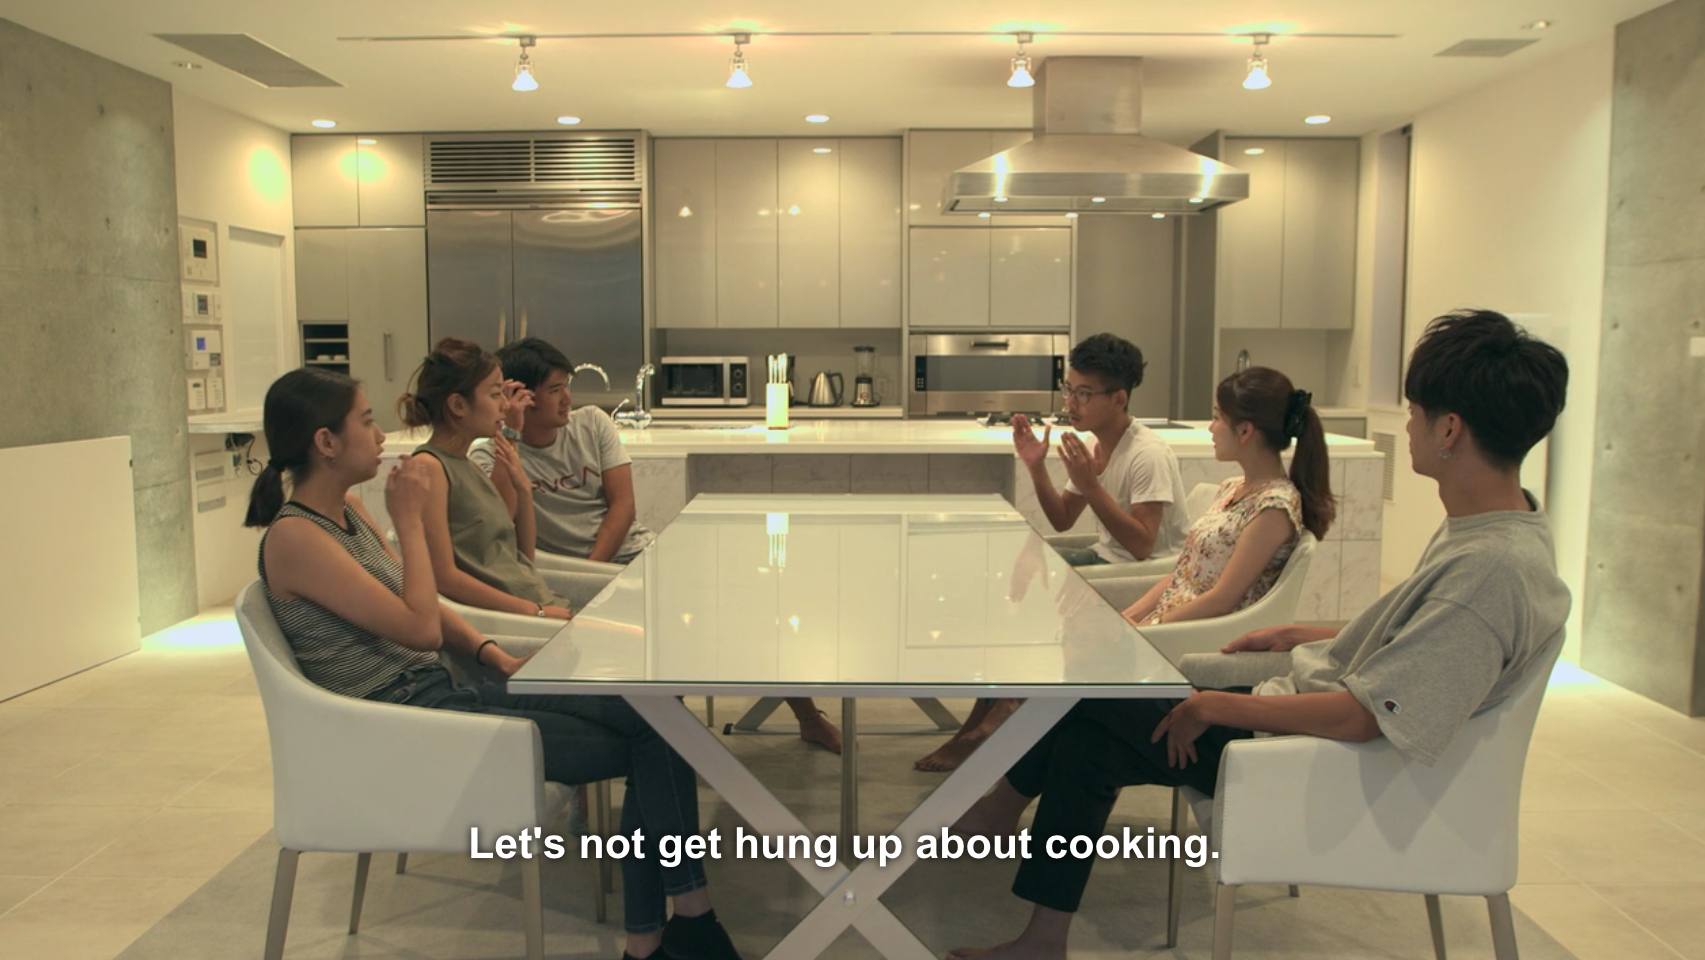 Terrace house fixes what s broken in reality tv polygon for Terrace house reality show